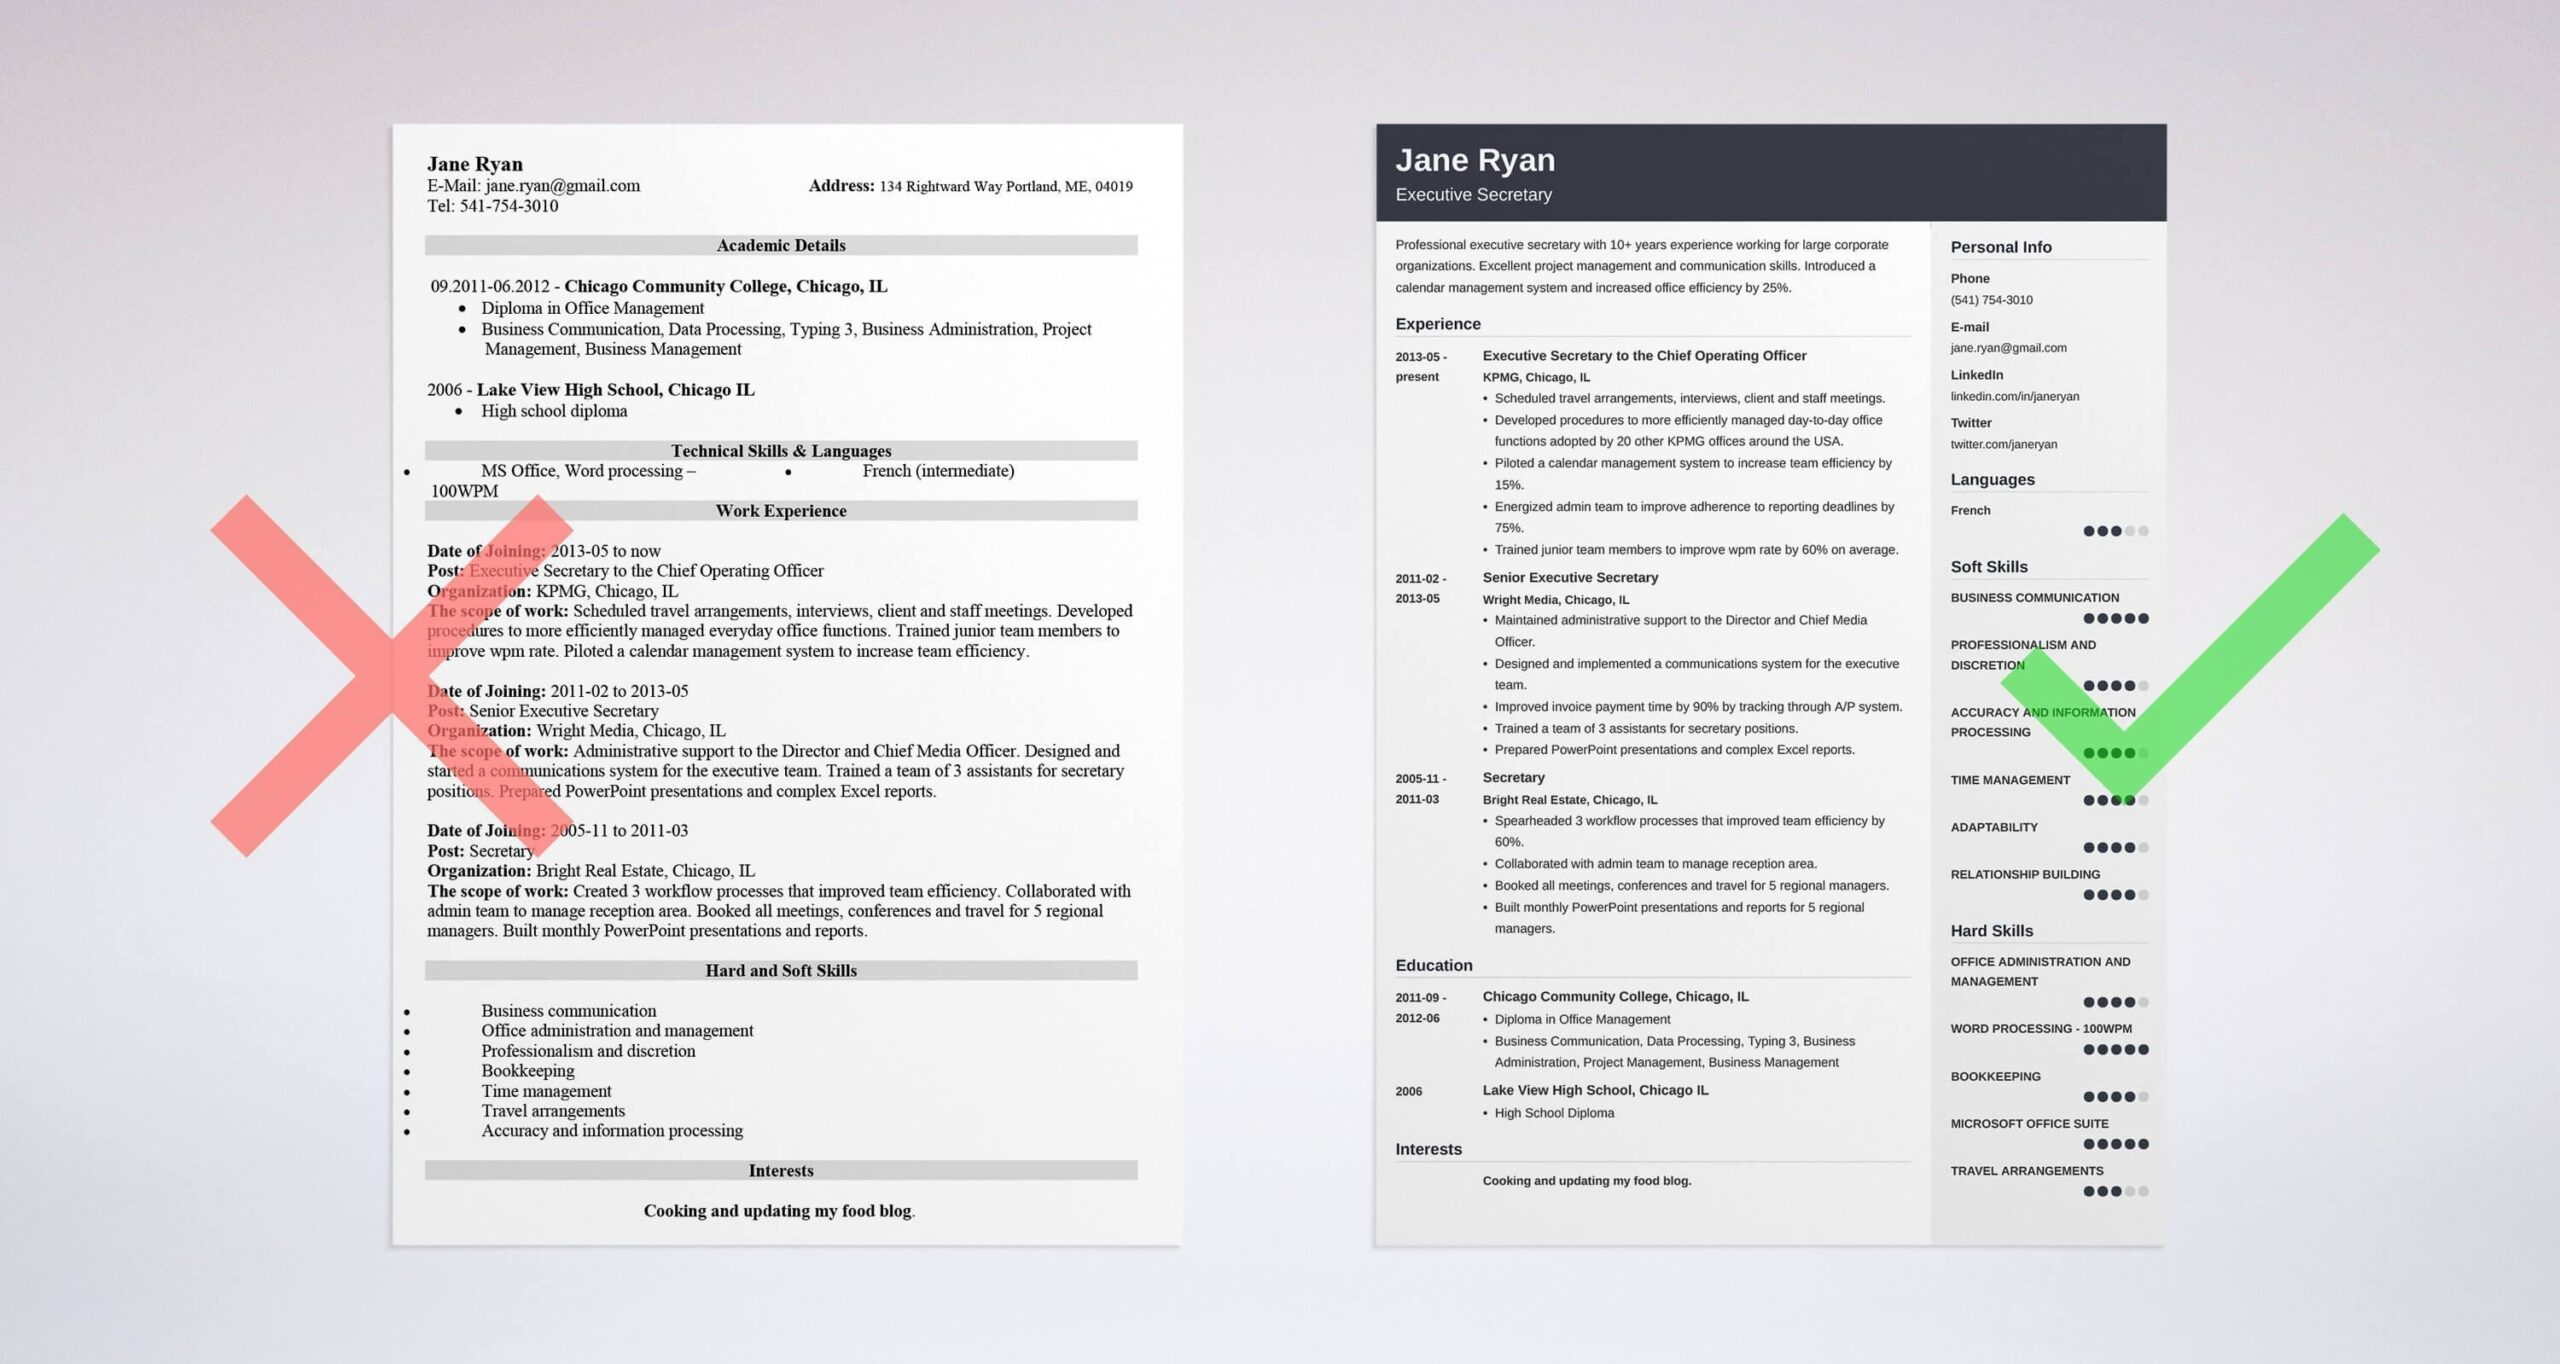 secretary resume examples of skills duties objectives template for job samples medical Resume Resume Template For Secretary Job